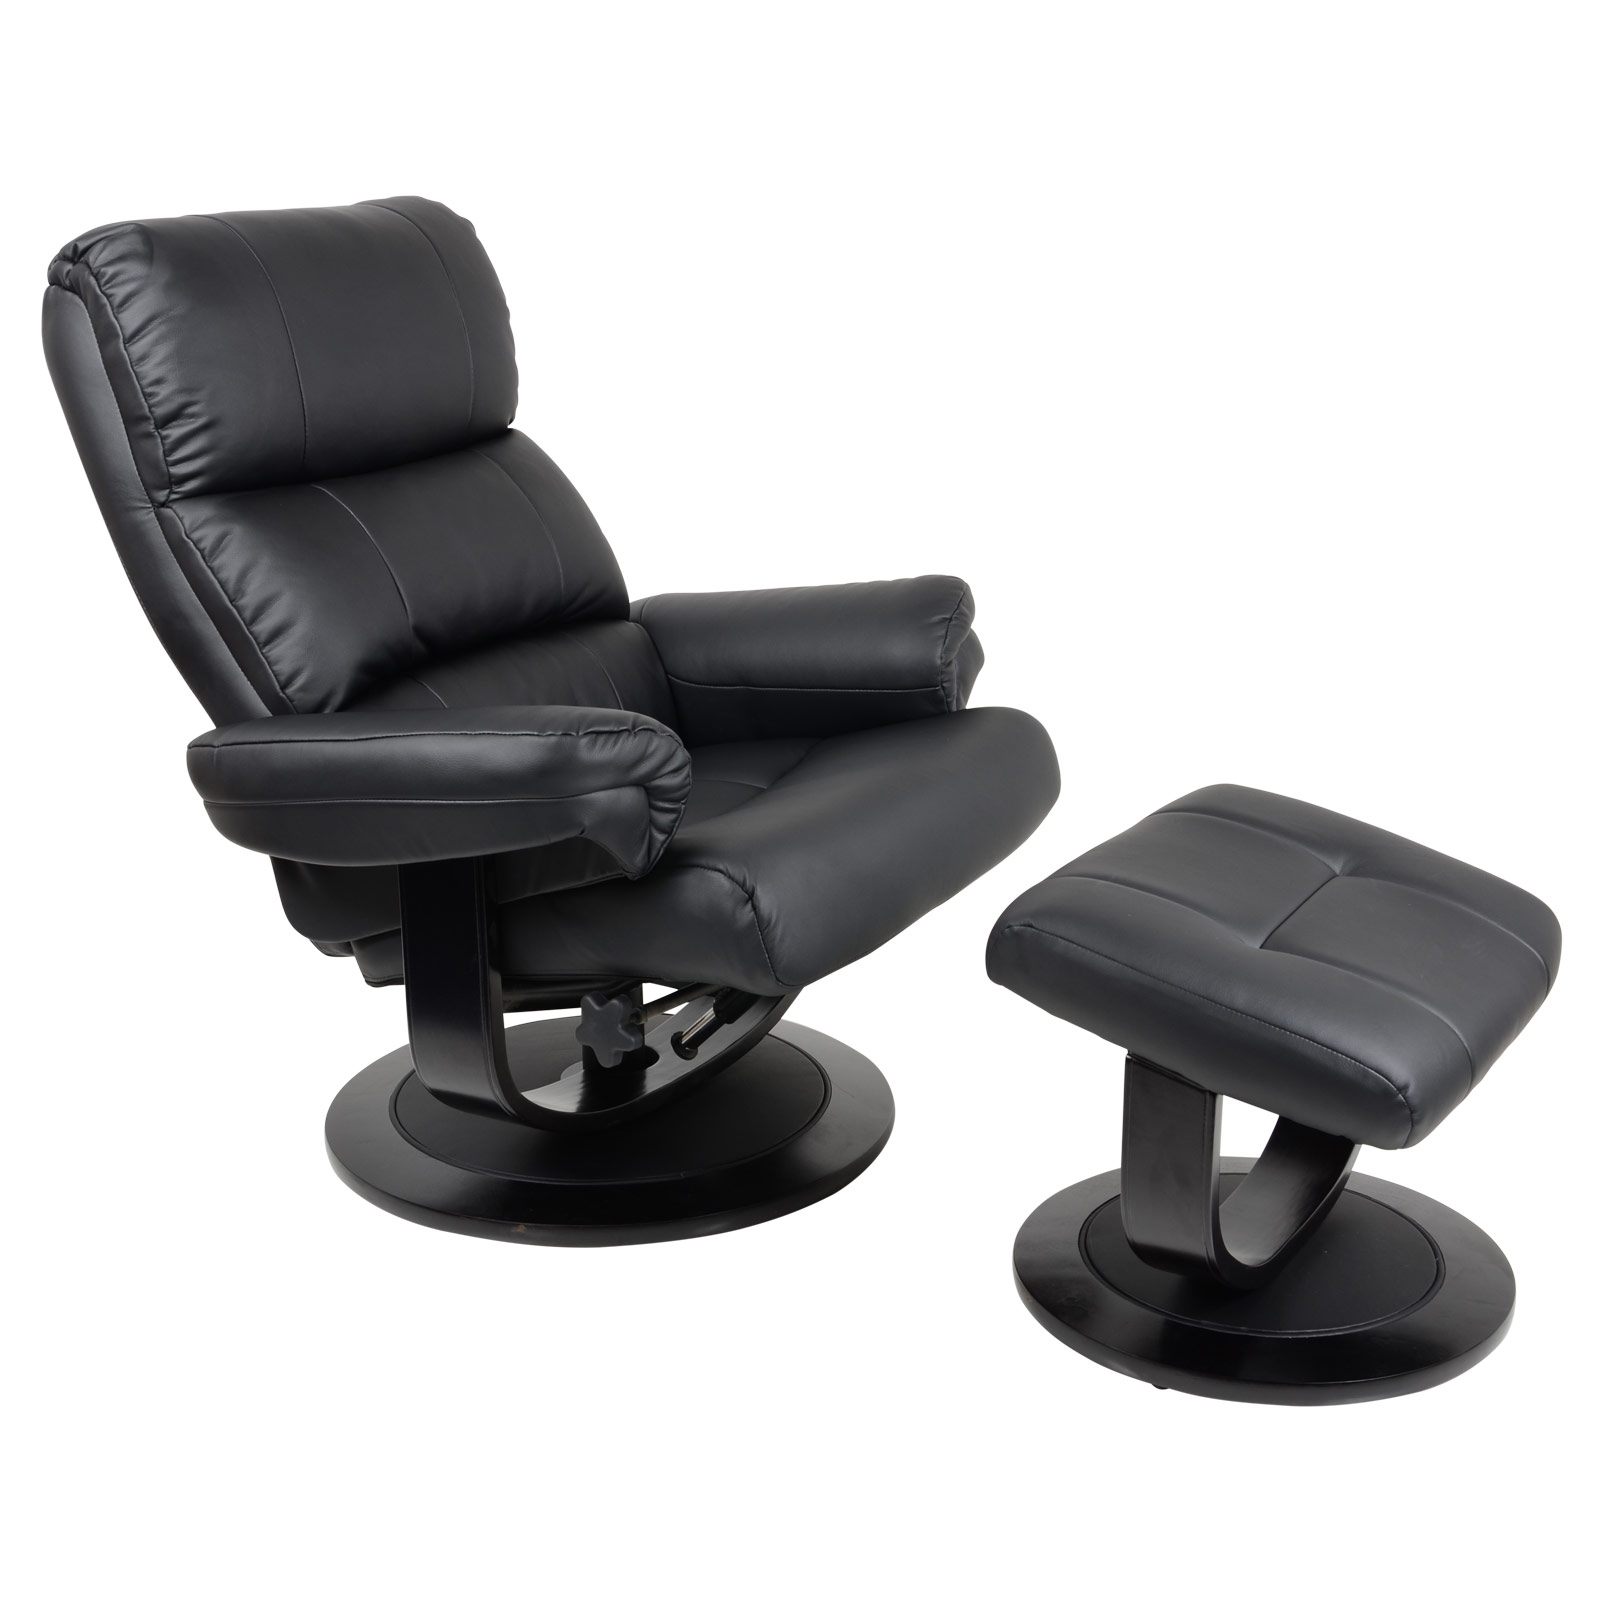 Luxury Black Faux Leather Relaxer Chair Recliner 360 ...